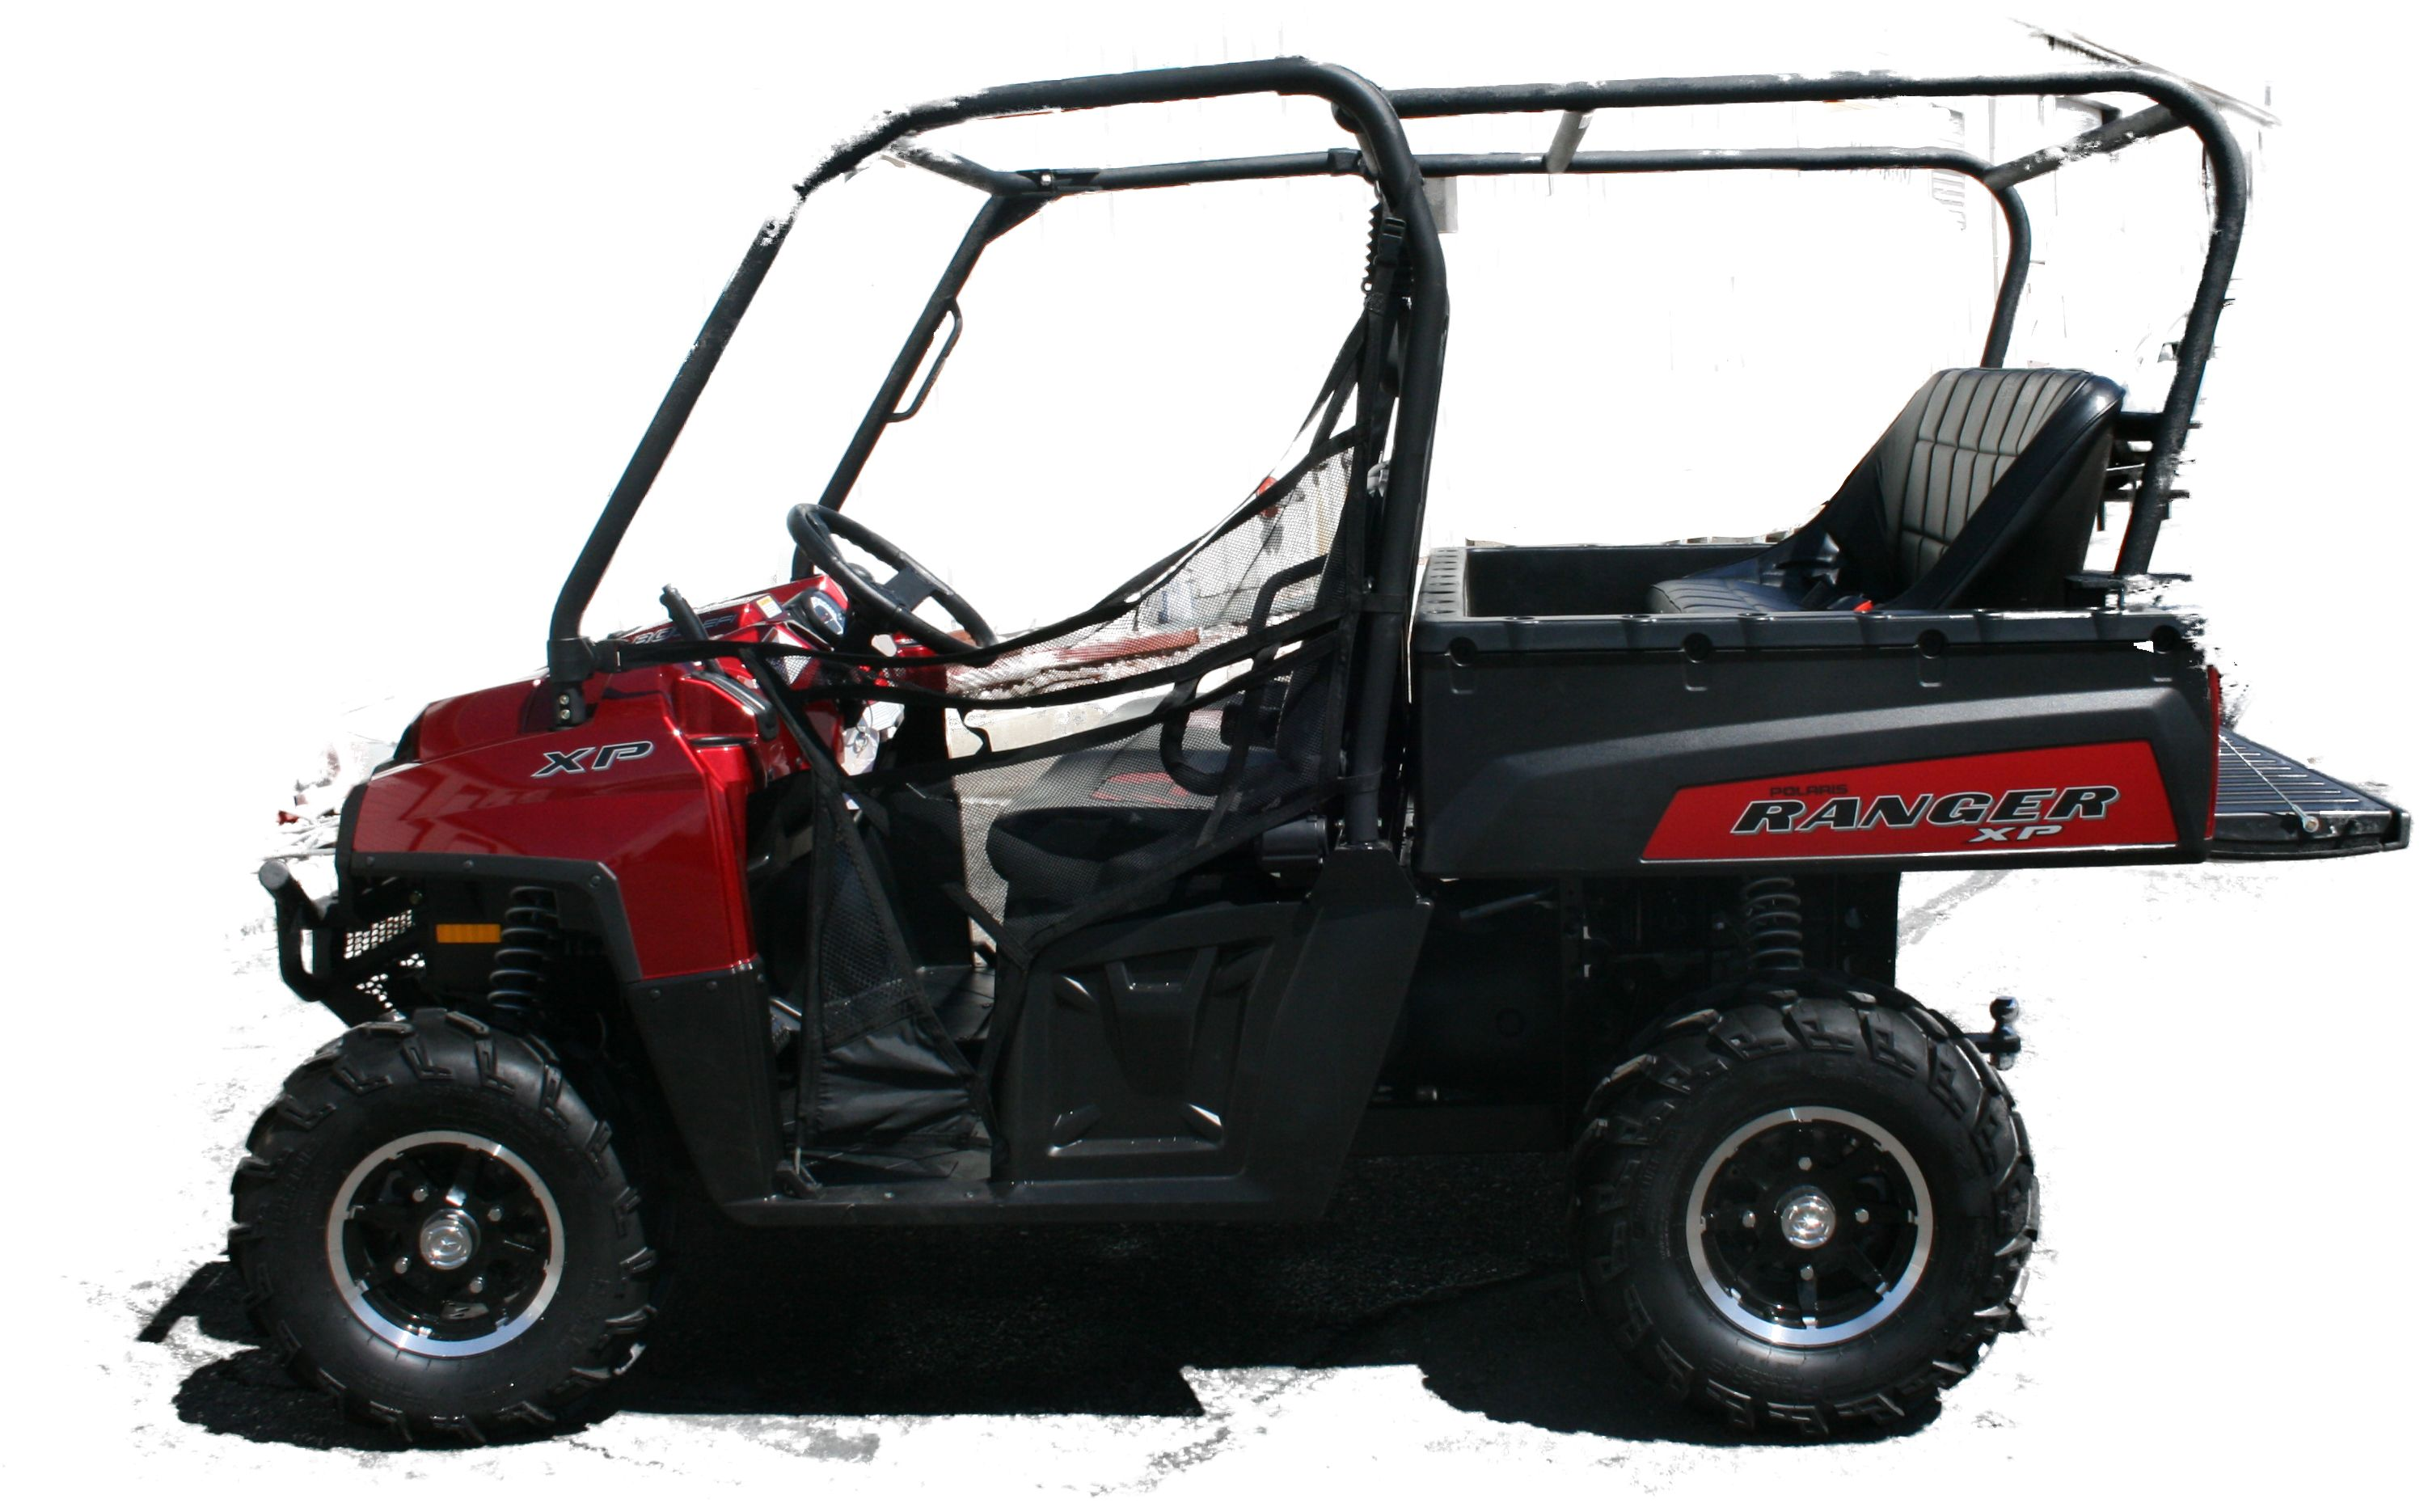 polaris ranger 800 back seat and roll cage kit designed to come in and out in minutes your kit includes polaris ranger 800 roll cage 42 bench seat 3 4  [ 2998 x 1870 Pixel ]